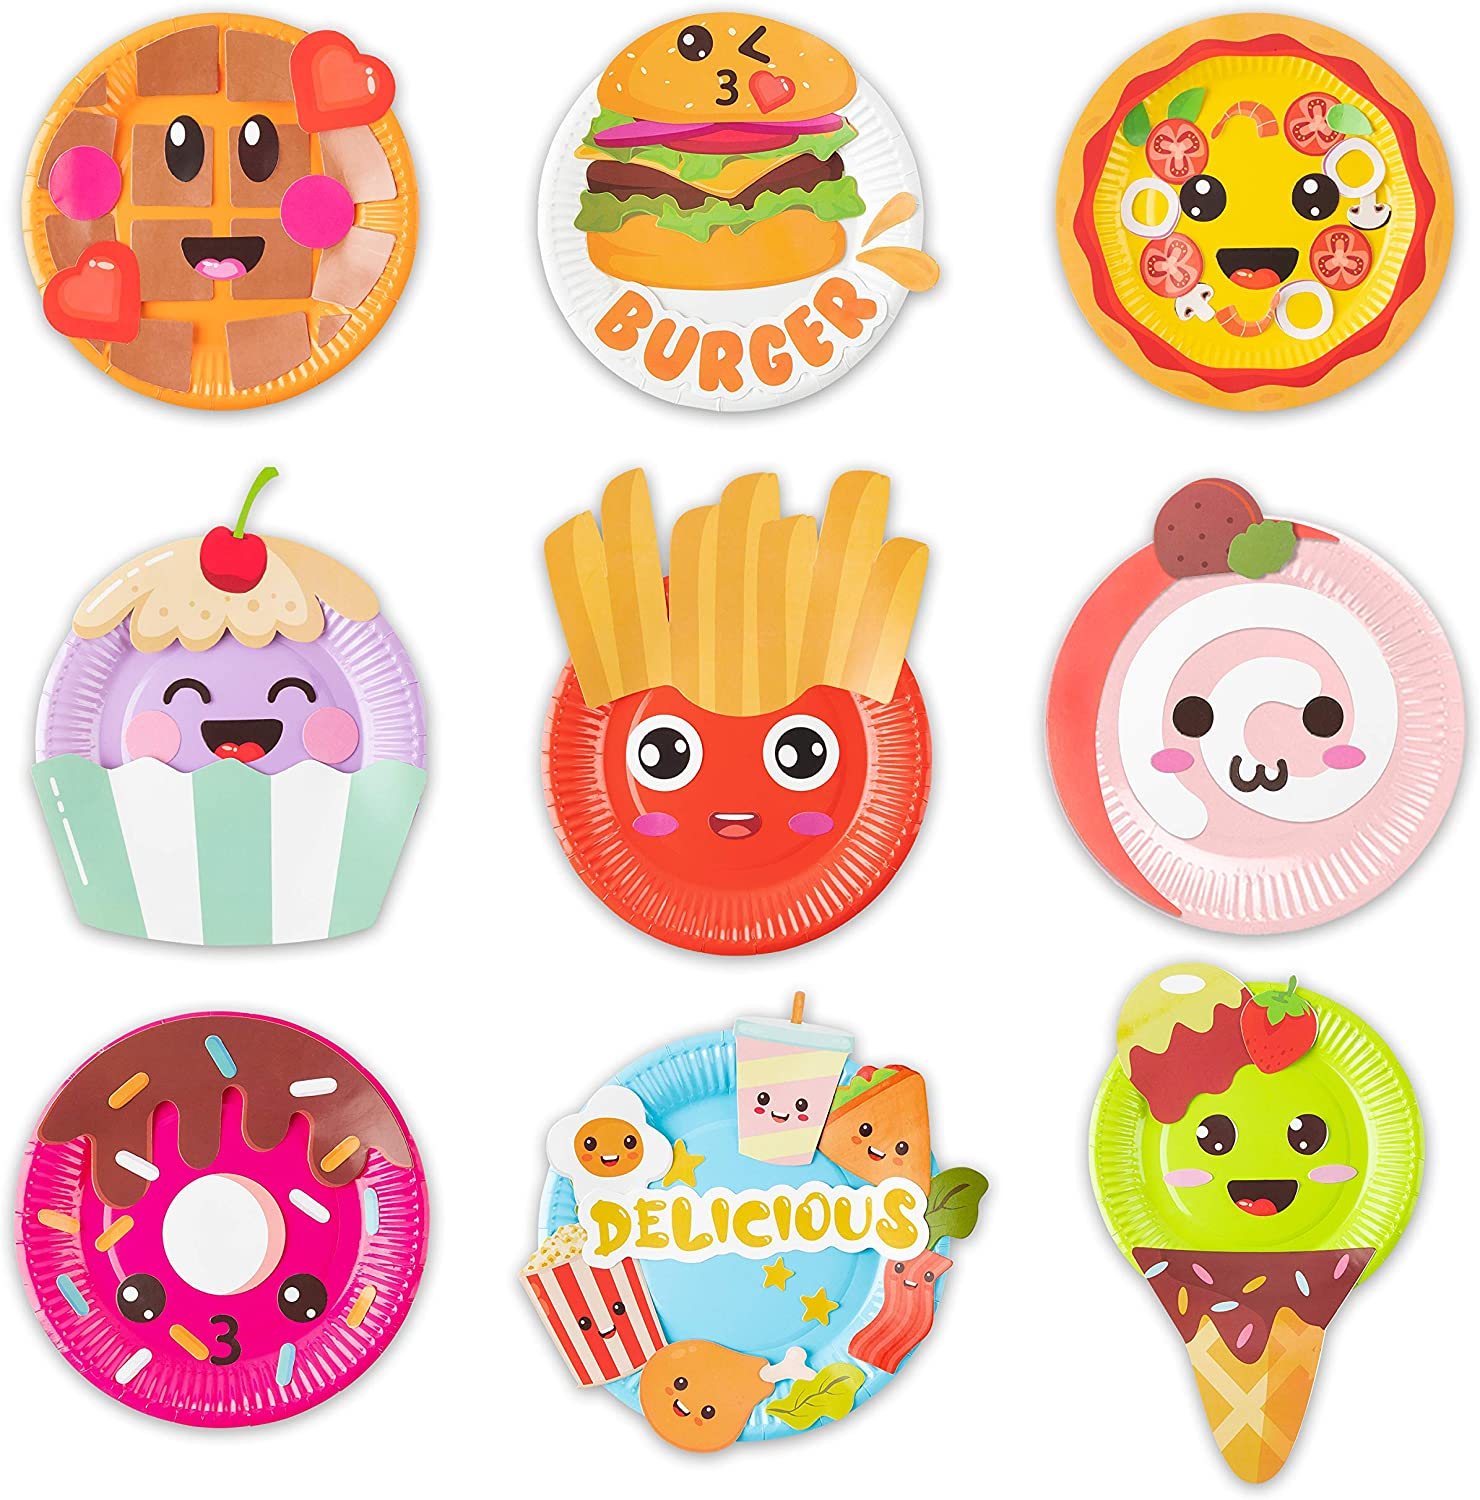 MALLMALL6 9Pcs Food Themed Paper Plate Art Kits for Kids Early Learning DIY Craft Art Project Waffle Pizza Hamburger Chips Donut Dessert Party Favors Decorations Classroom Art Supplies for Boys Girls